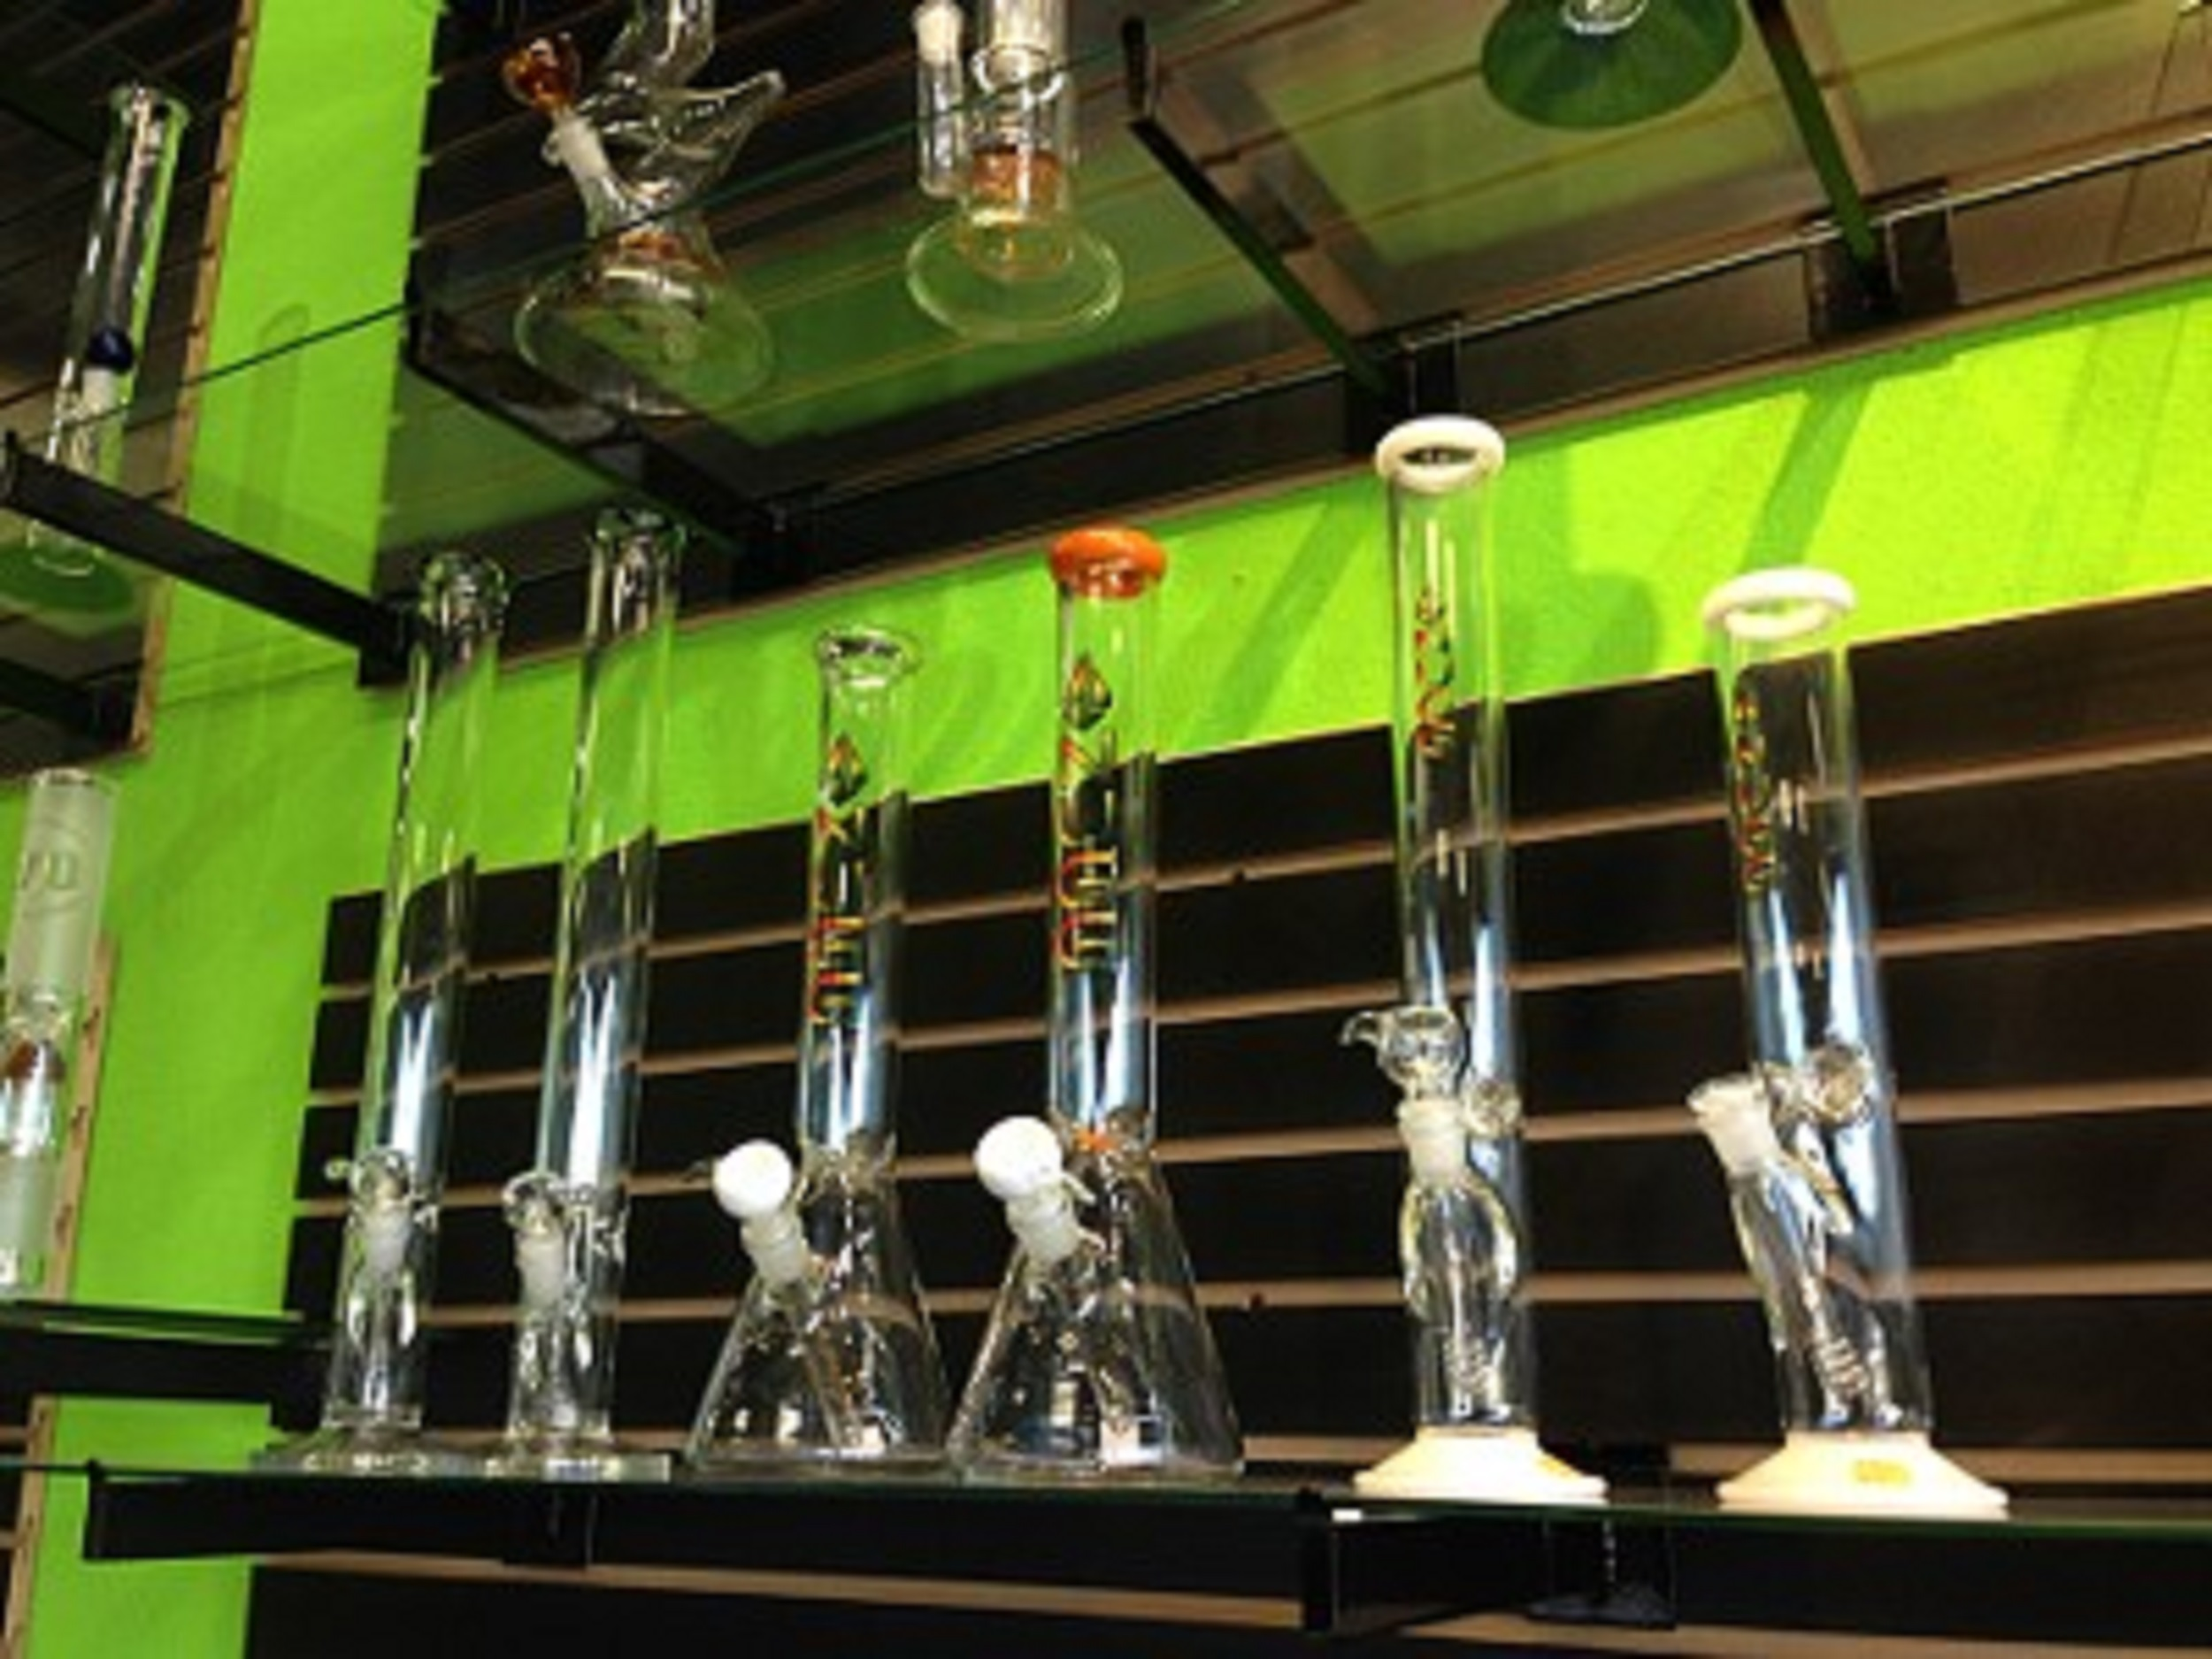 We have the largest supply of glass, pipes and bongs in Arizona.